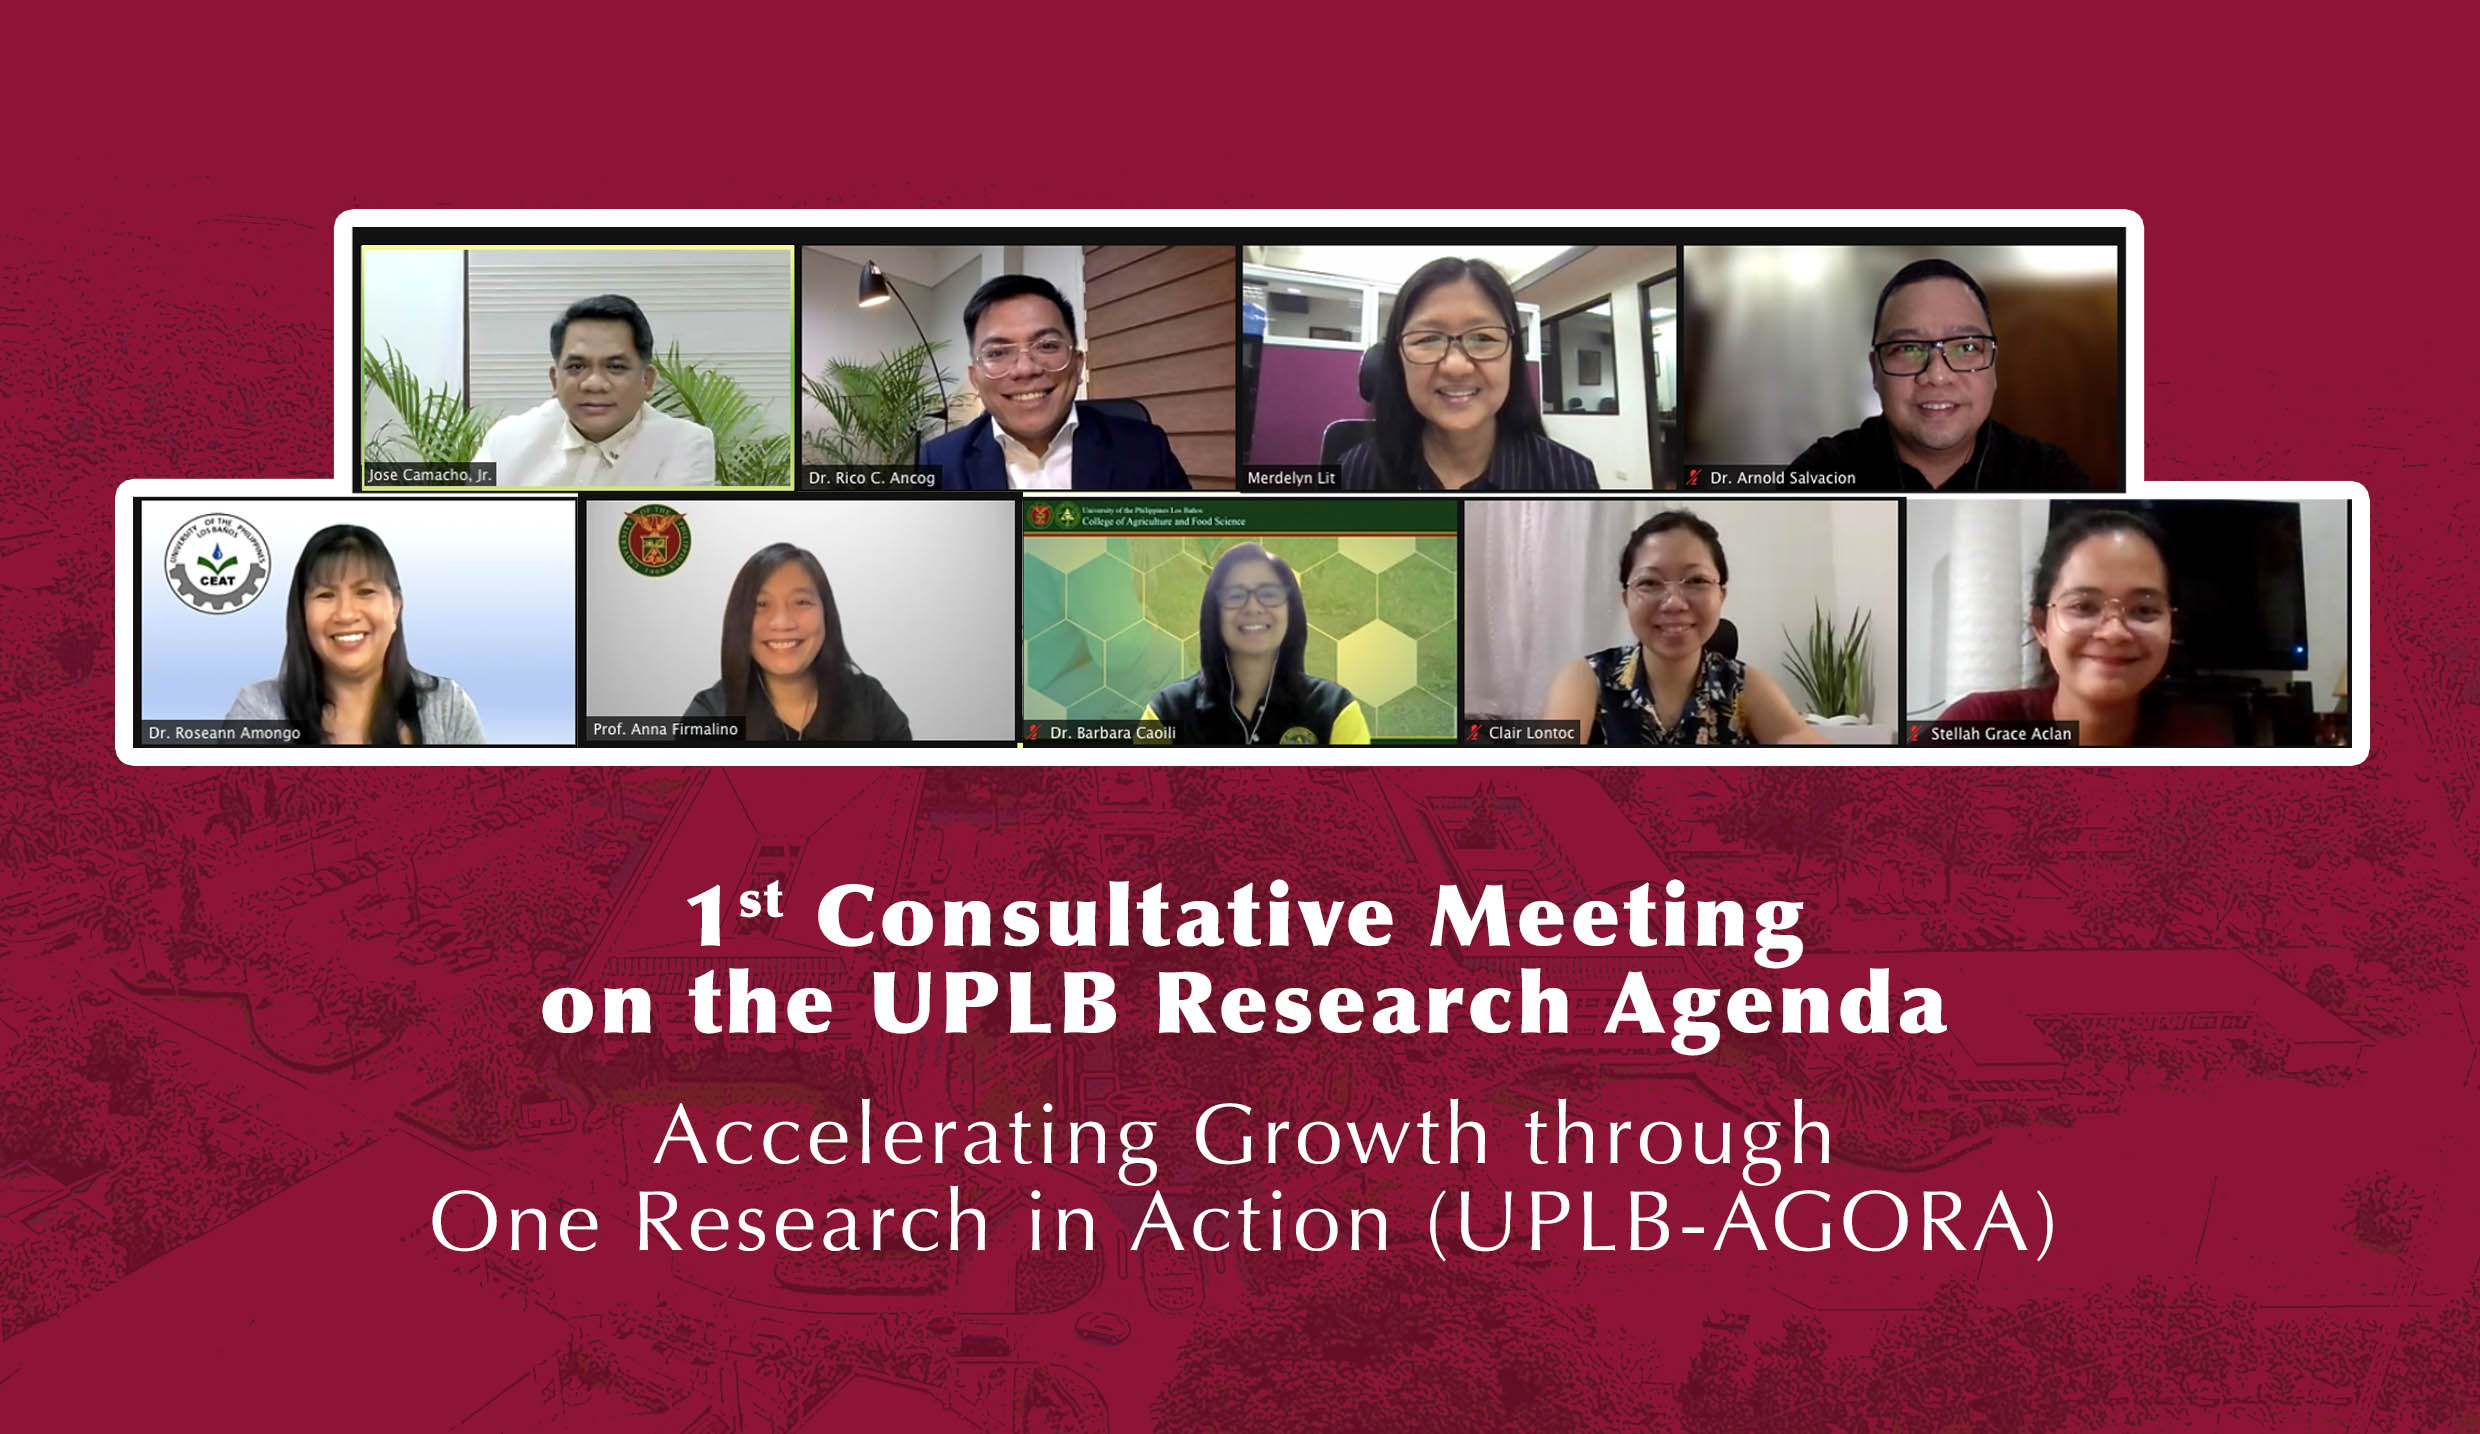 UPLB consults researchers on research agenda